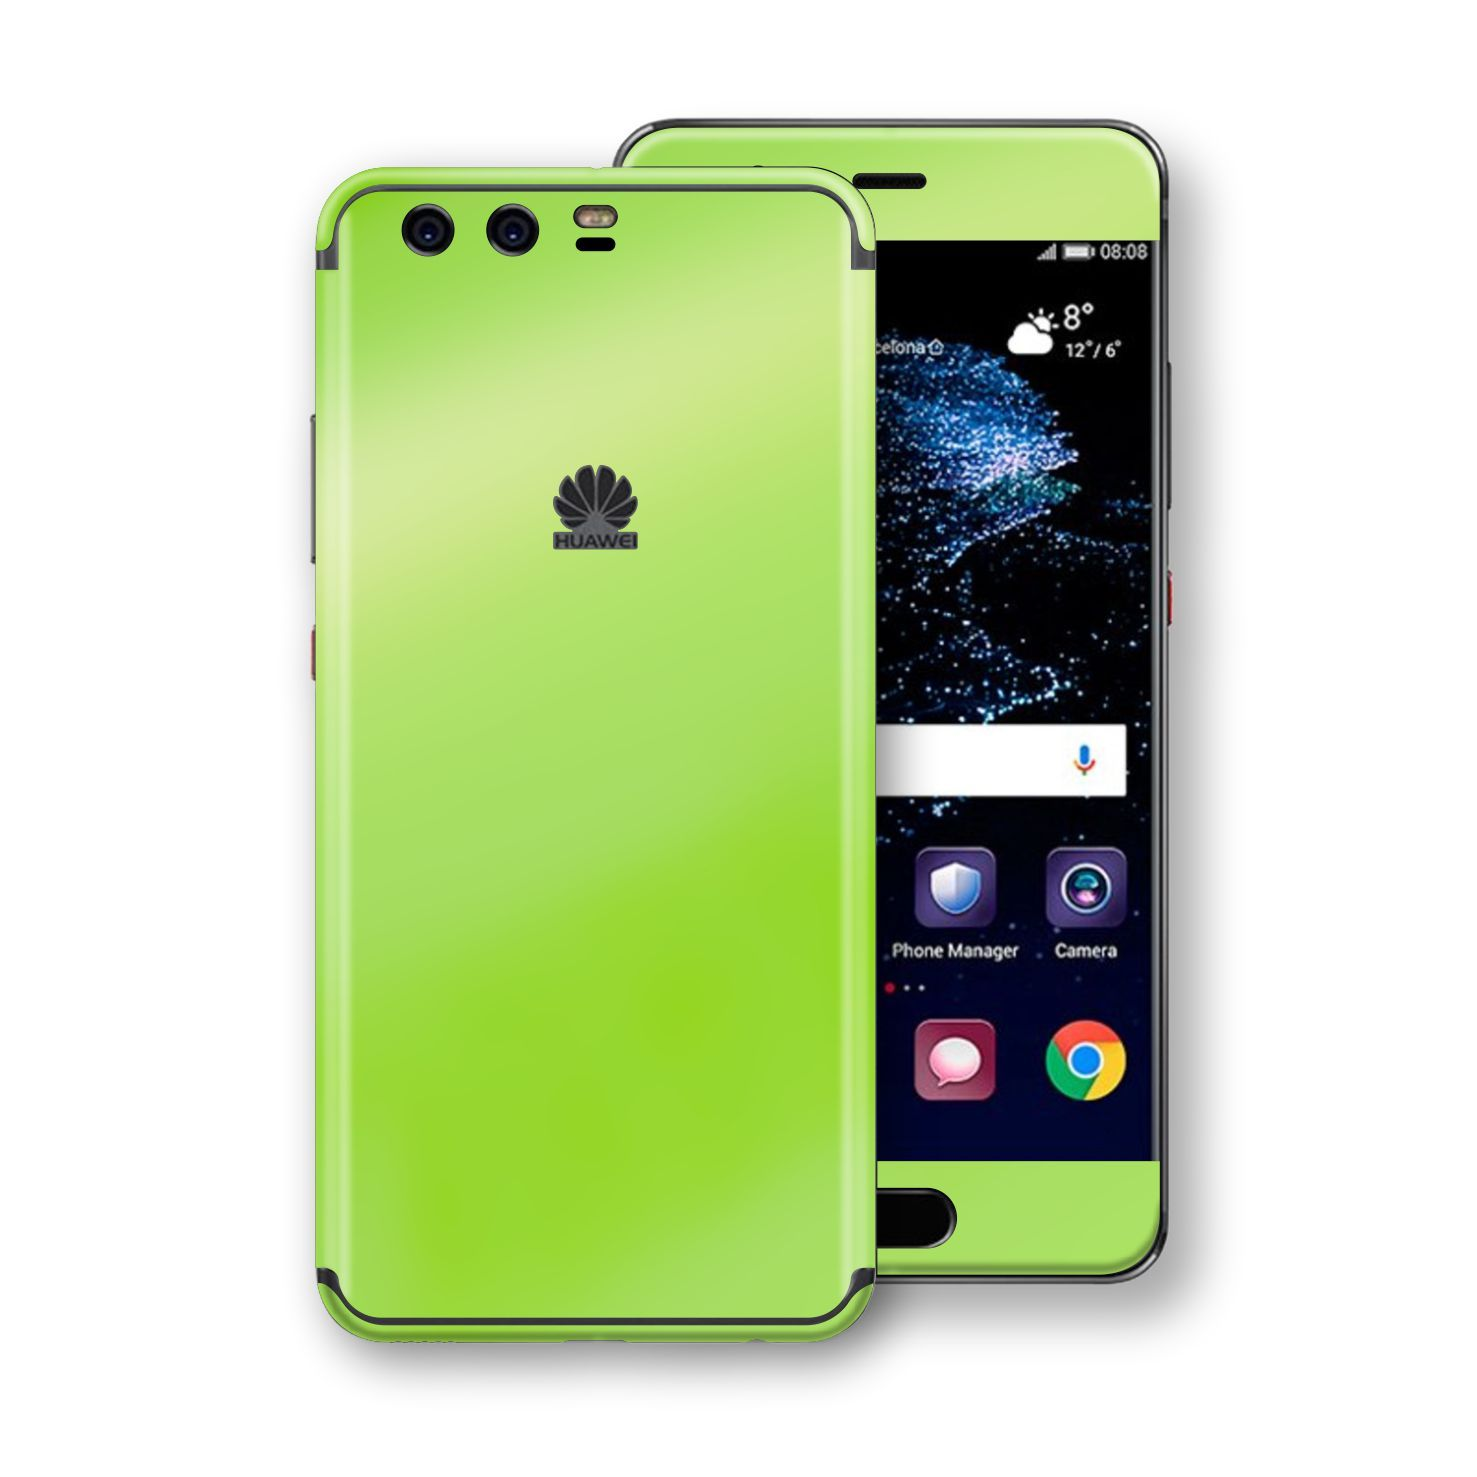 Huawei P10+ PLUS Apple Green Pearl Gloss Finish Skin, Decal, Wrap, Protector, Cover by EasySkinz | EasySkinz.com